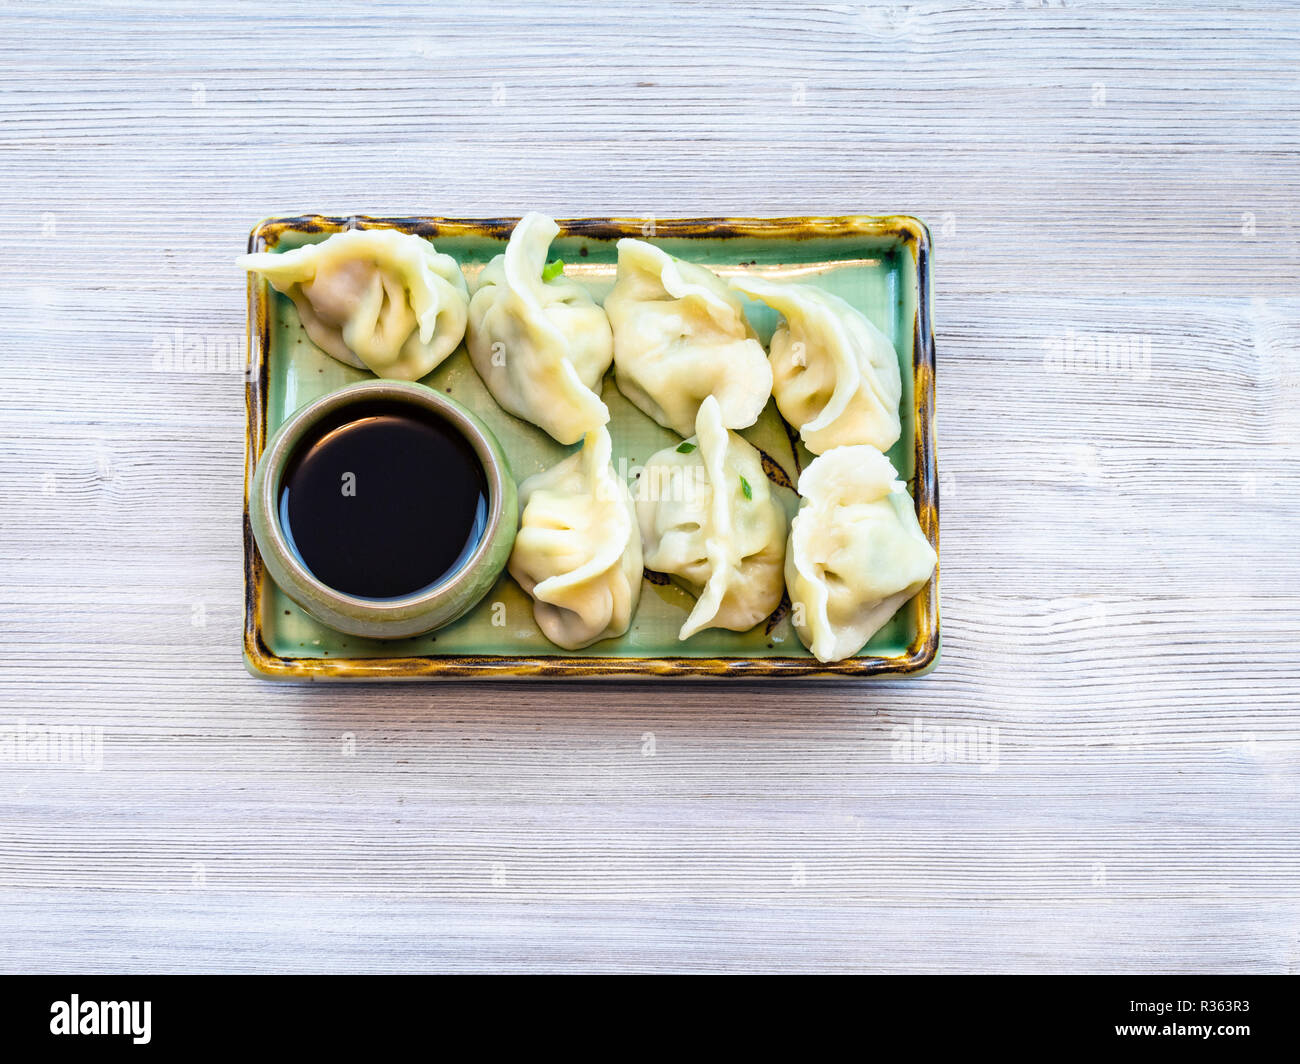 Chinese cuisine dish - top view of served portion of Dumplings with three fillings (shrimp, egg and greens) on green plate on gray table - Stock Image